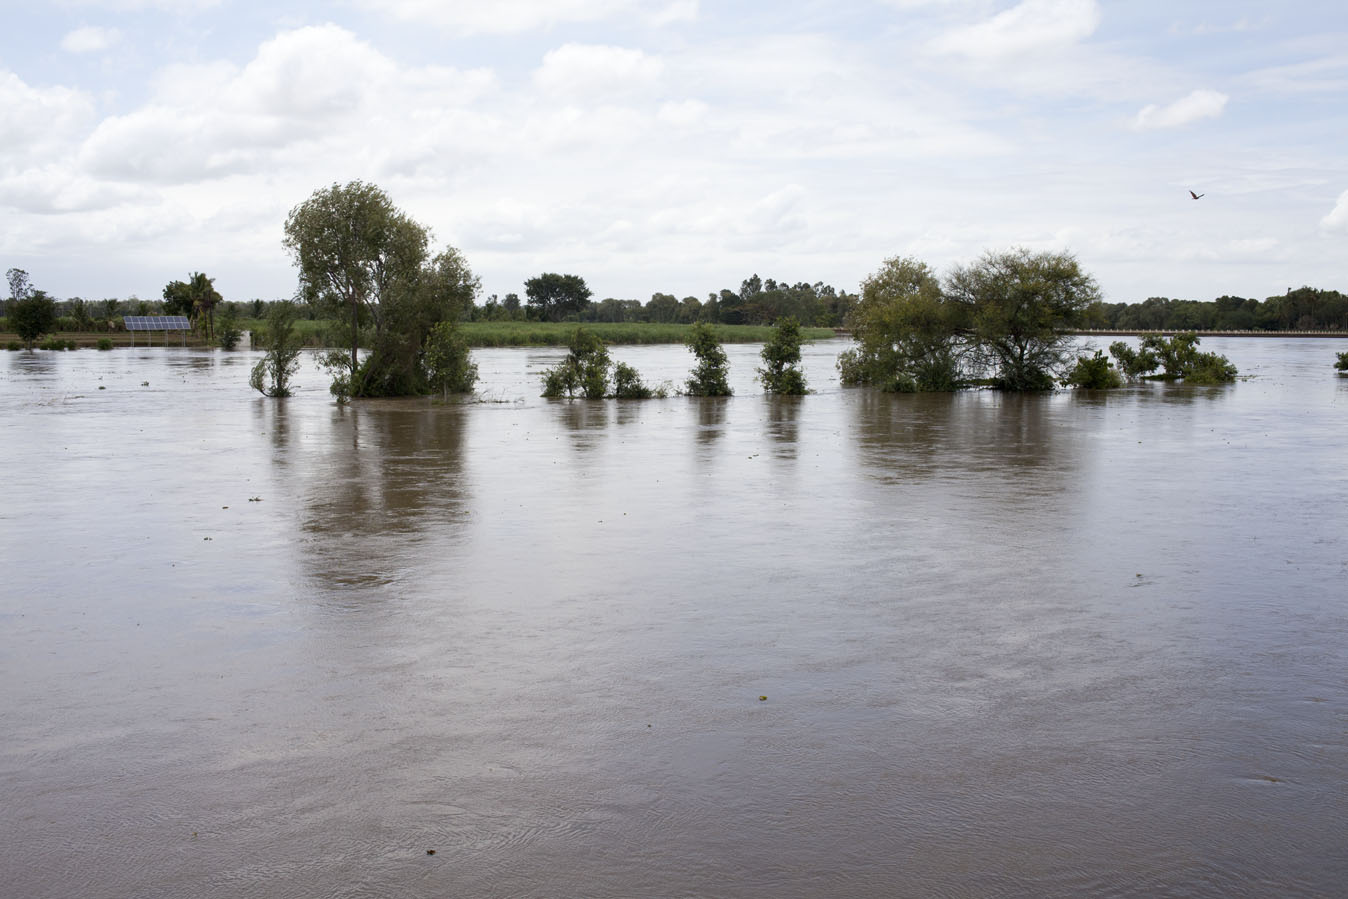 Becca_Ewing_India_flooded river 1.jpg